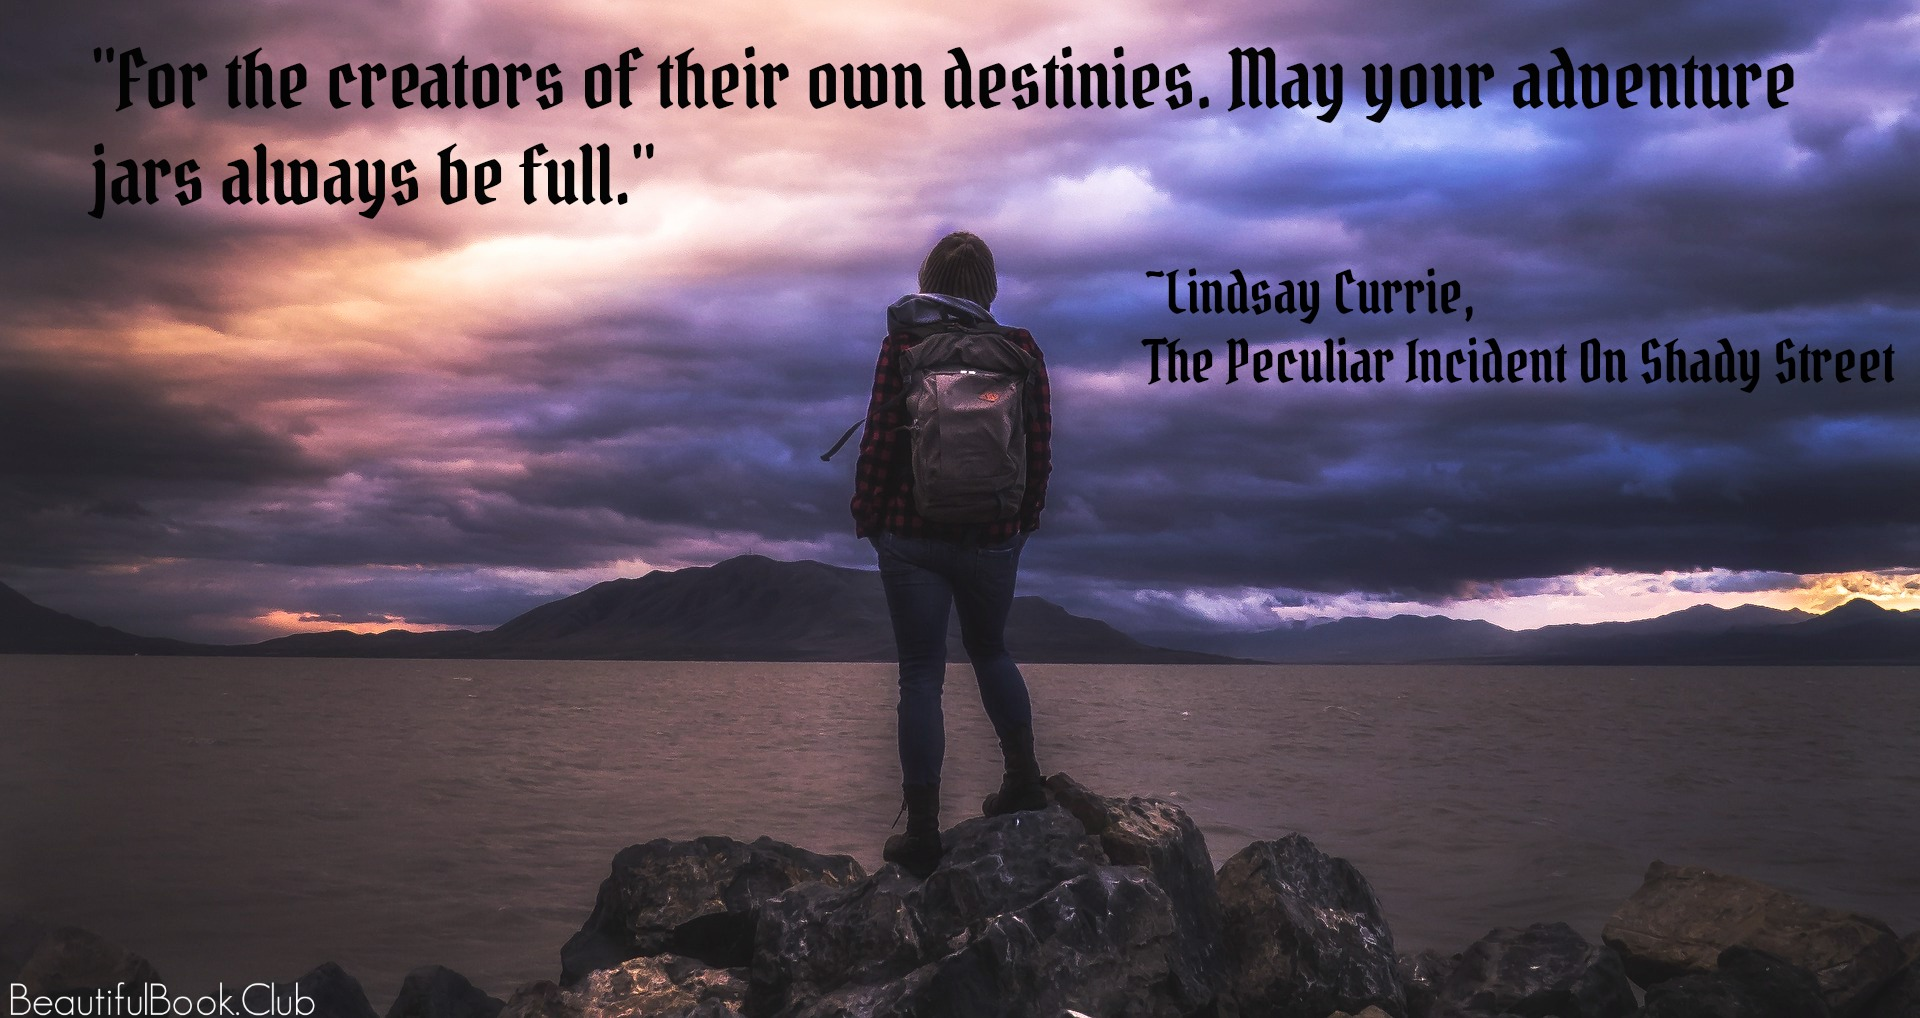 amazing quote by Lindsay Currie, The Peculiar Incident On Shady Street